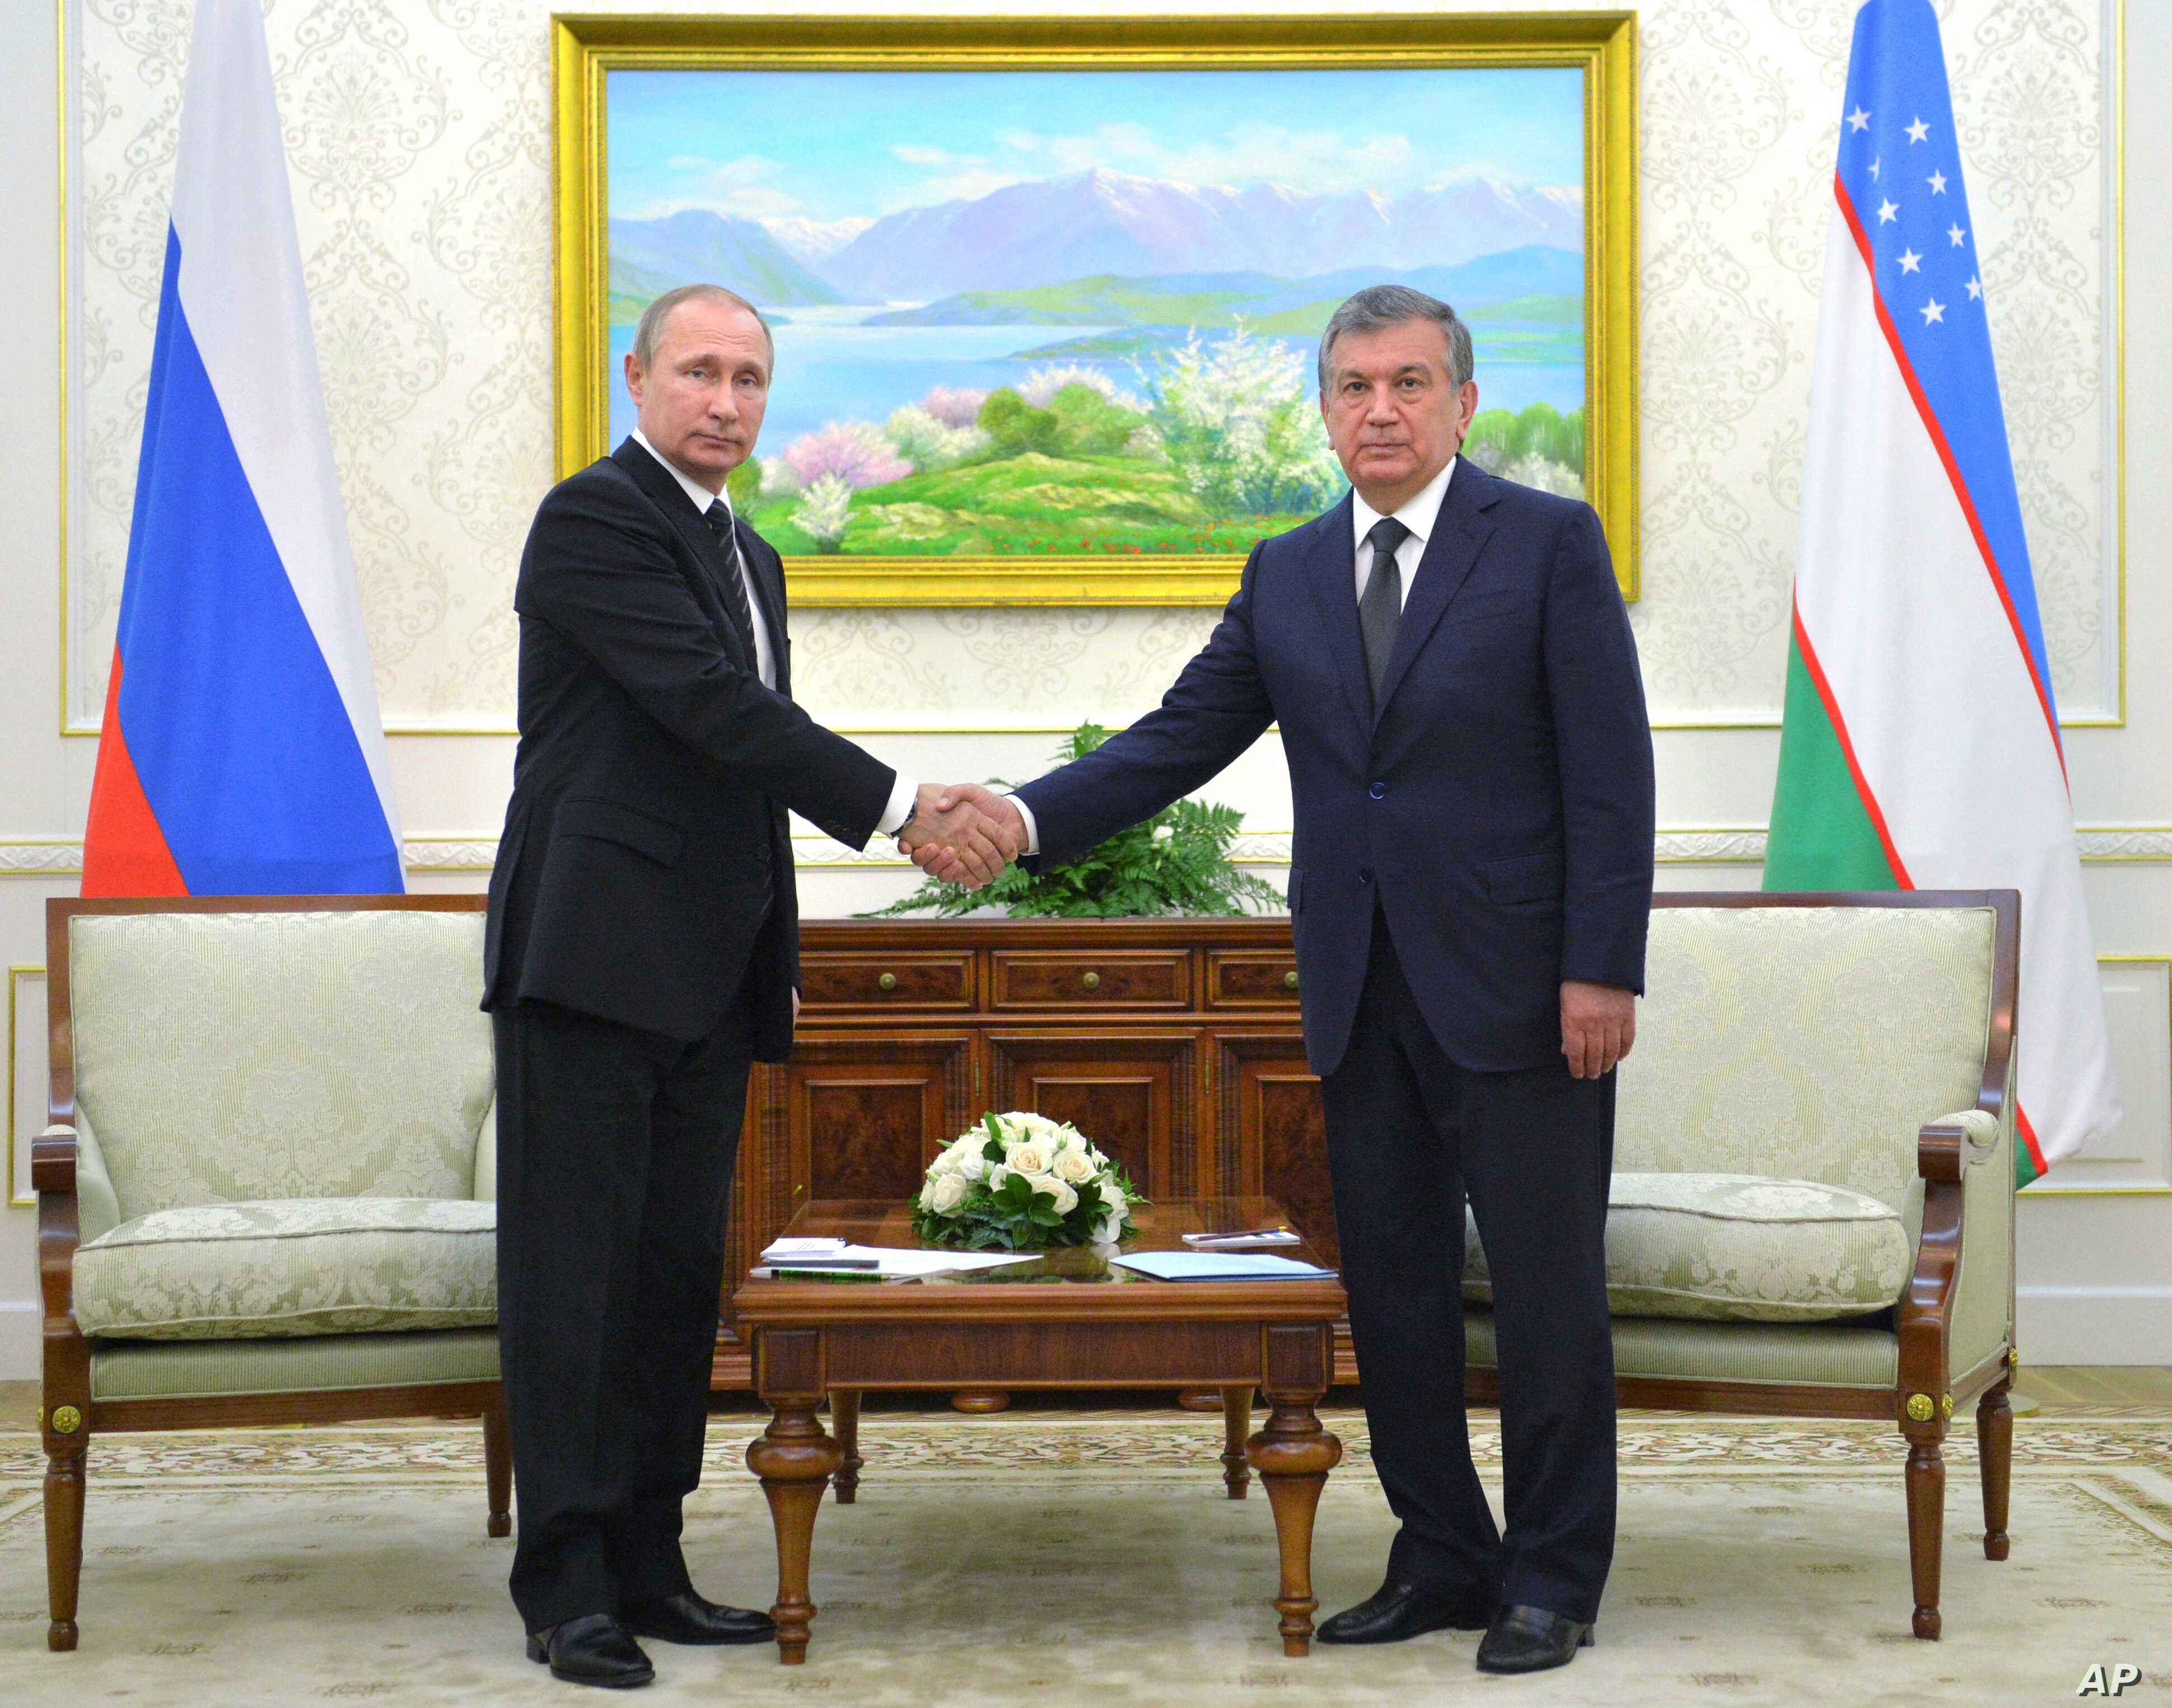 Russia S Putin Urges Karimov S Successors To Continue Tough Style Of Rule Voice Of America English